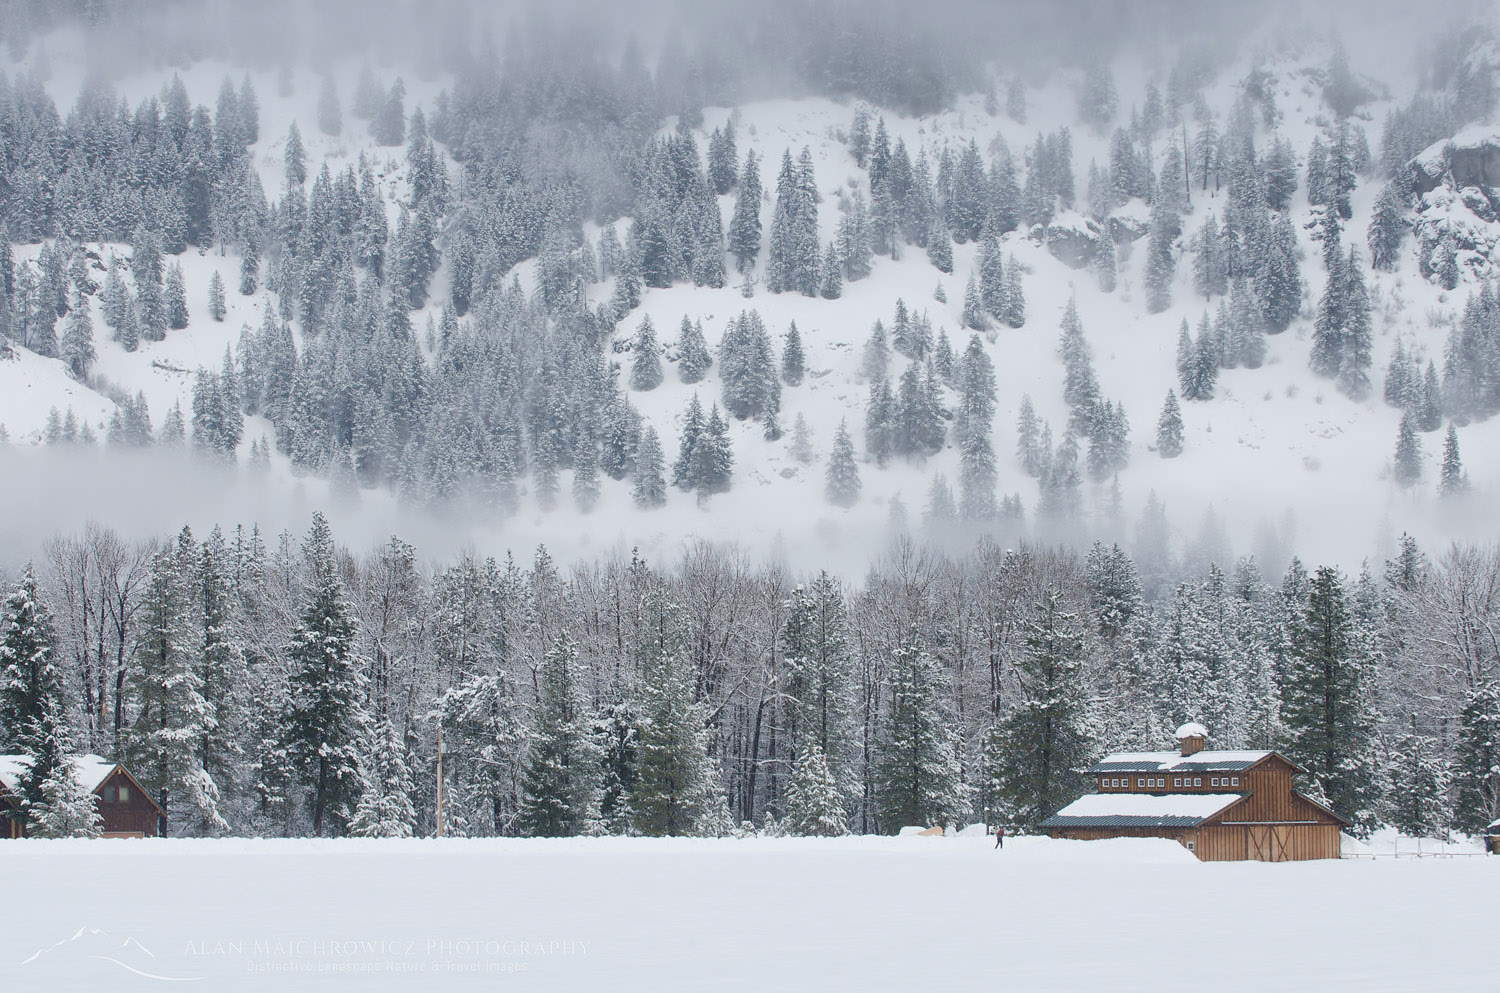 Methow Valley barn, Washington